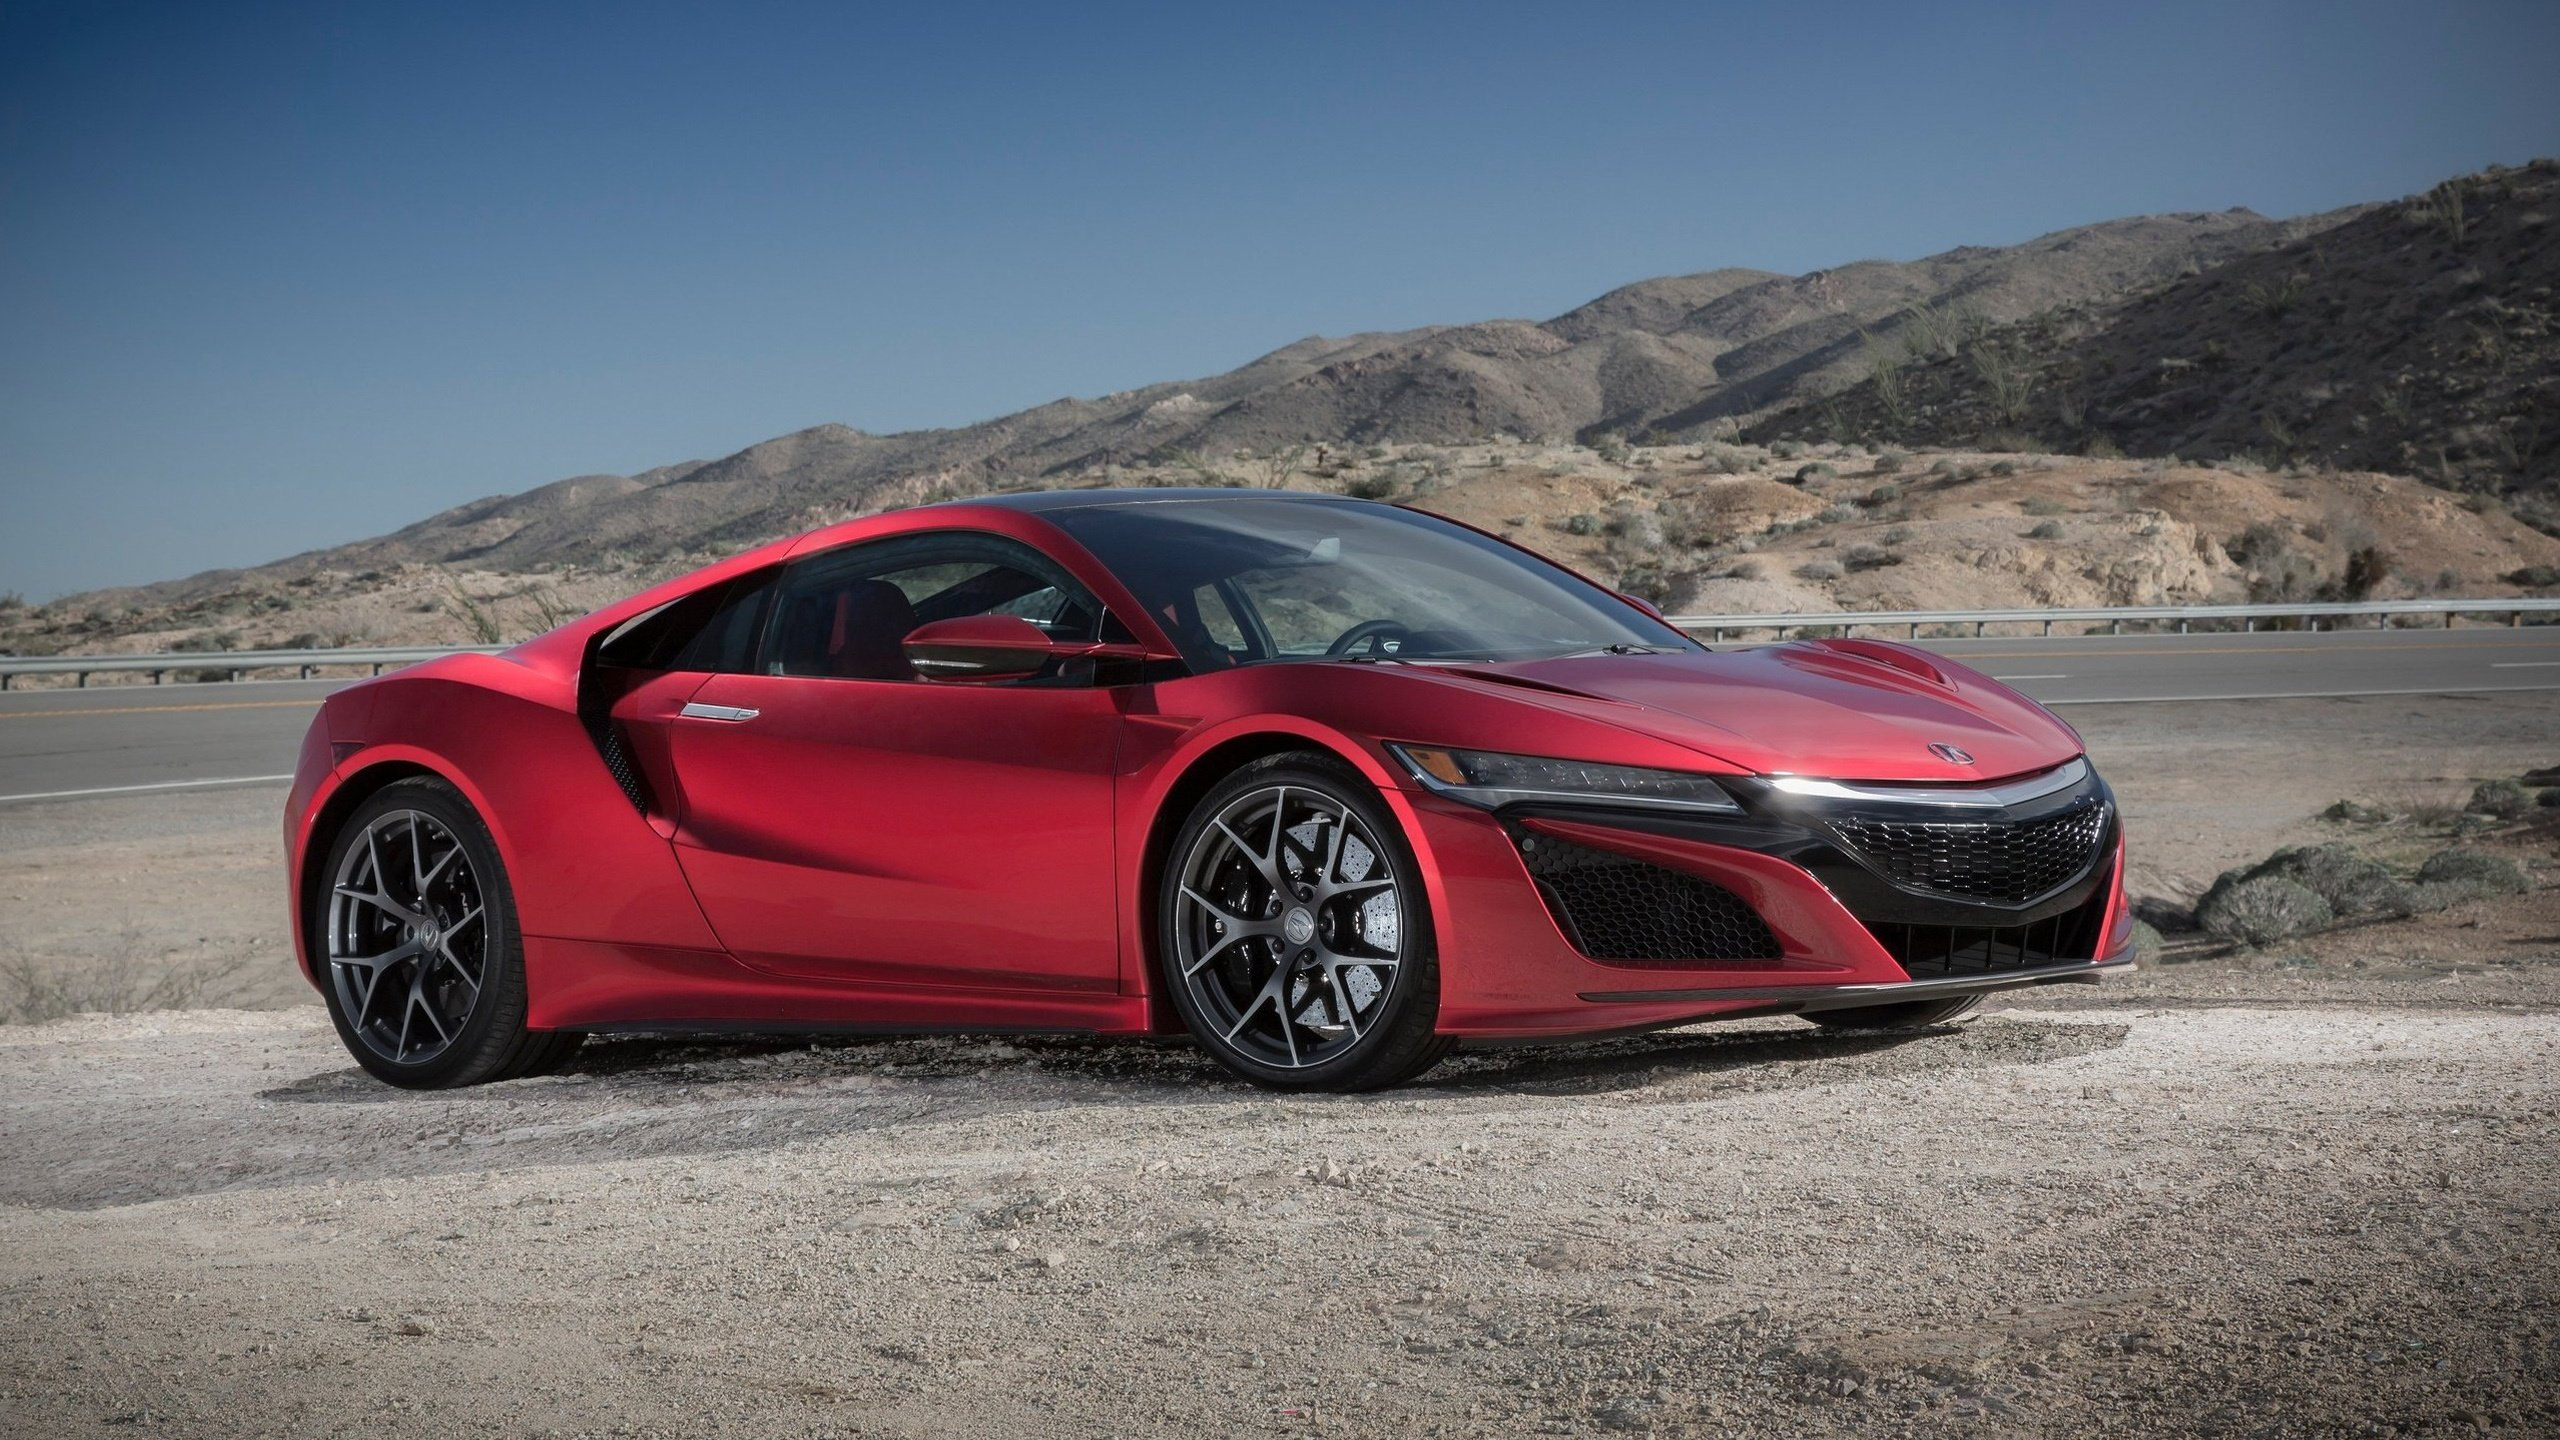 Acura Nsx Backgrounds 2560x1440